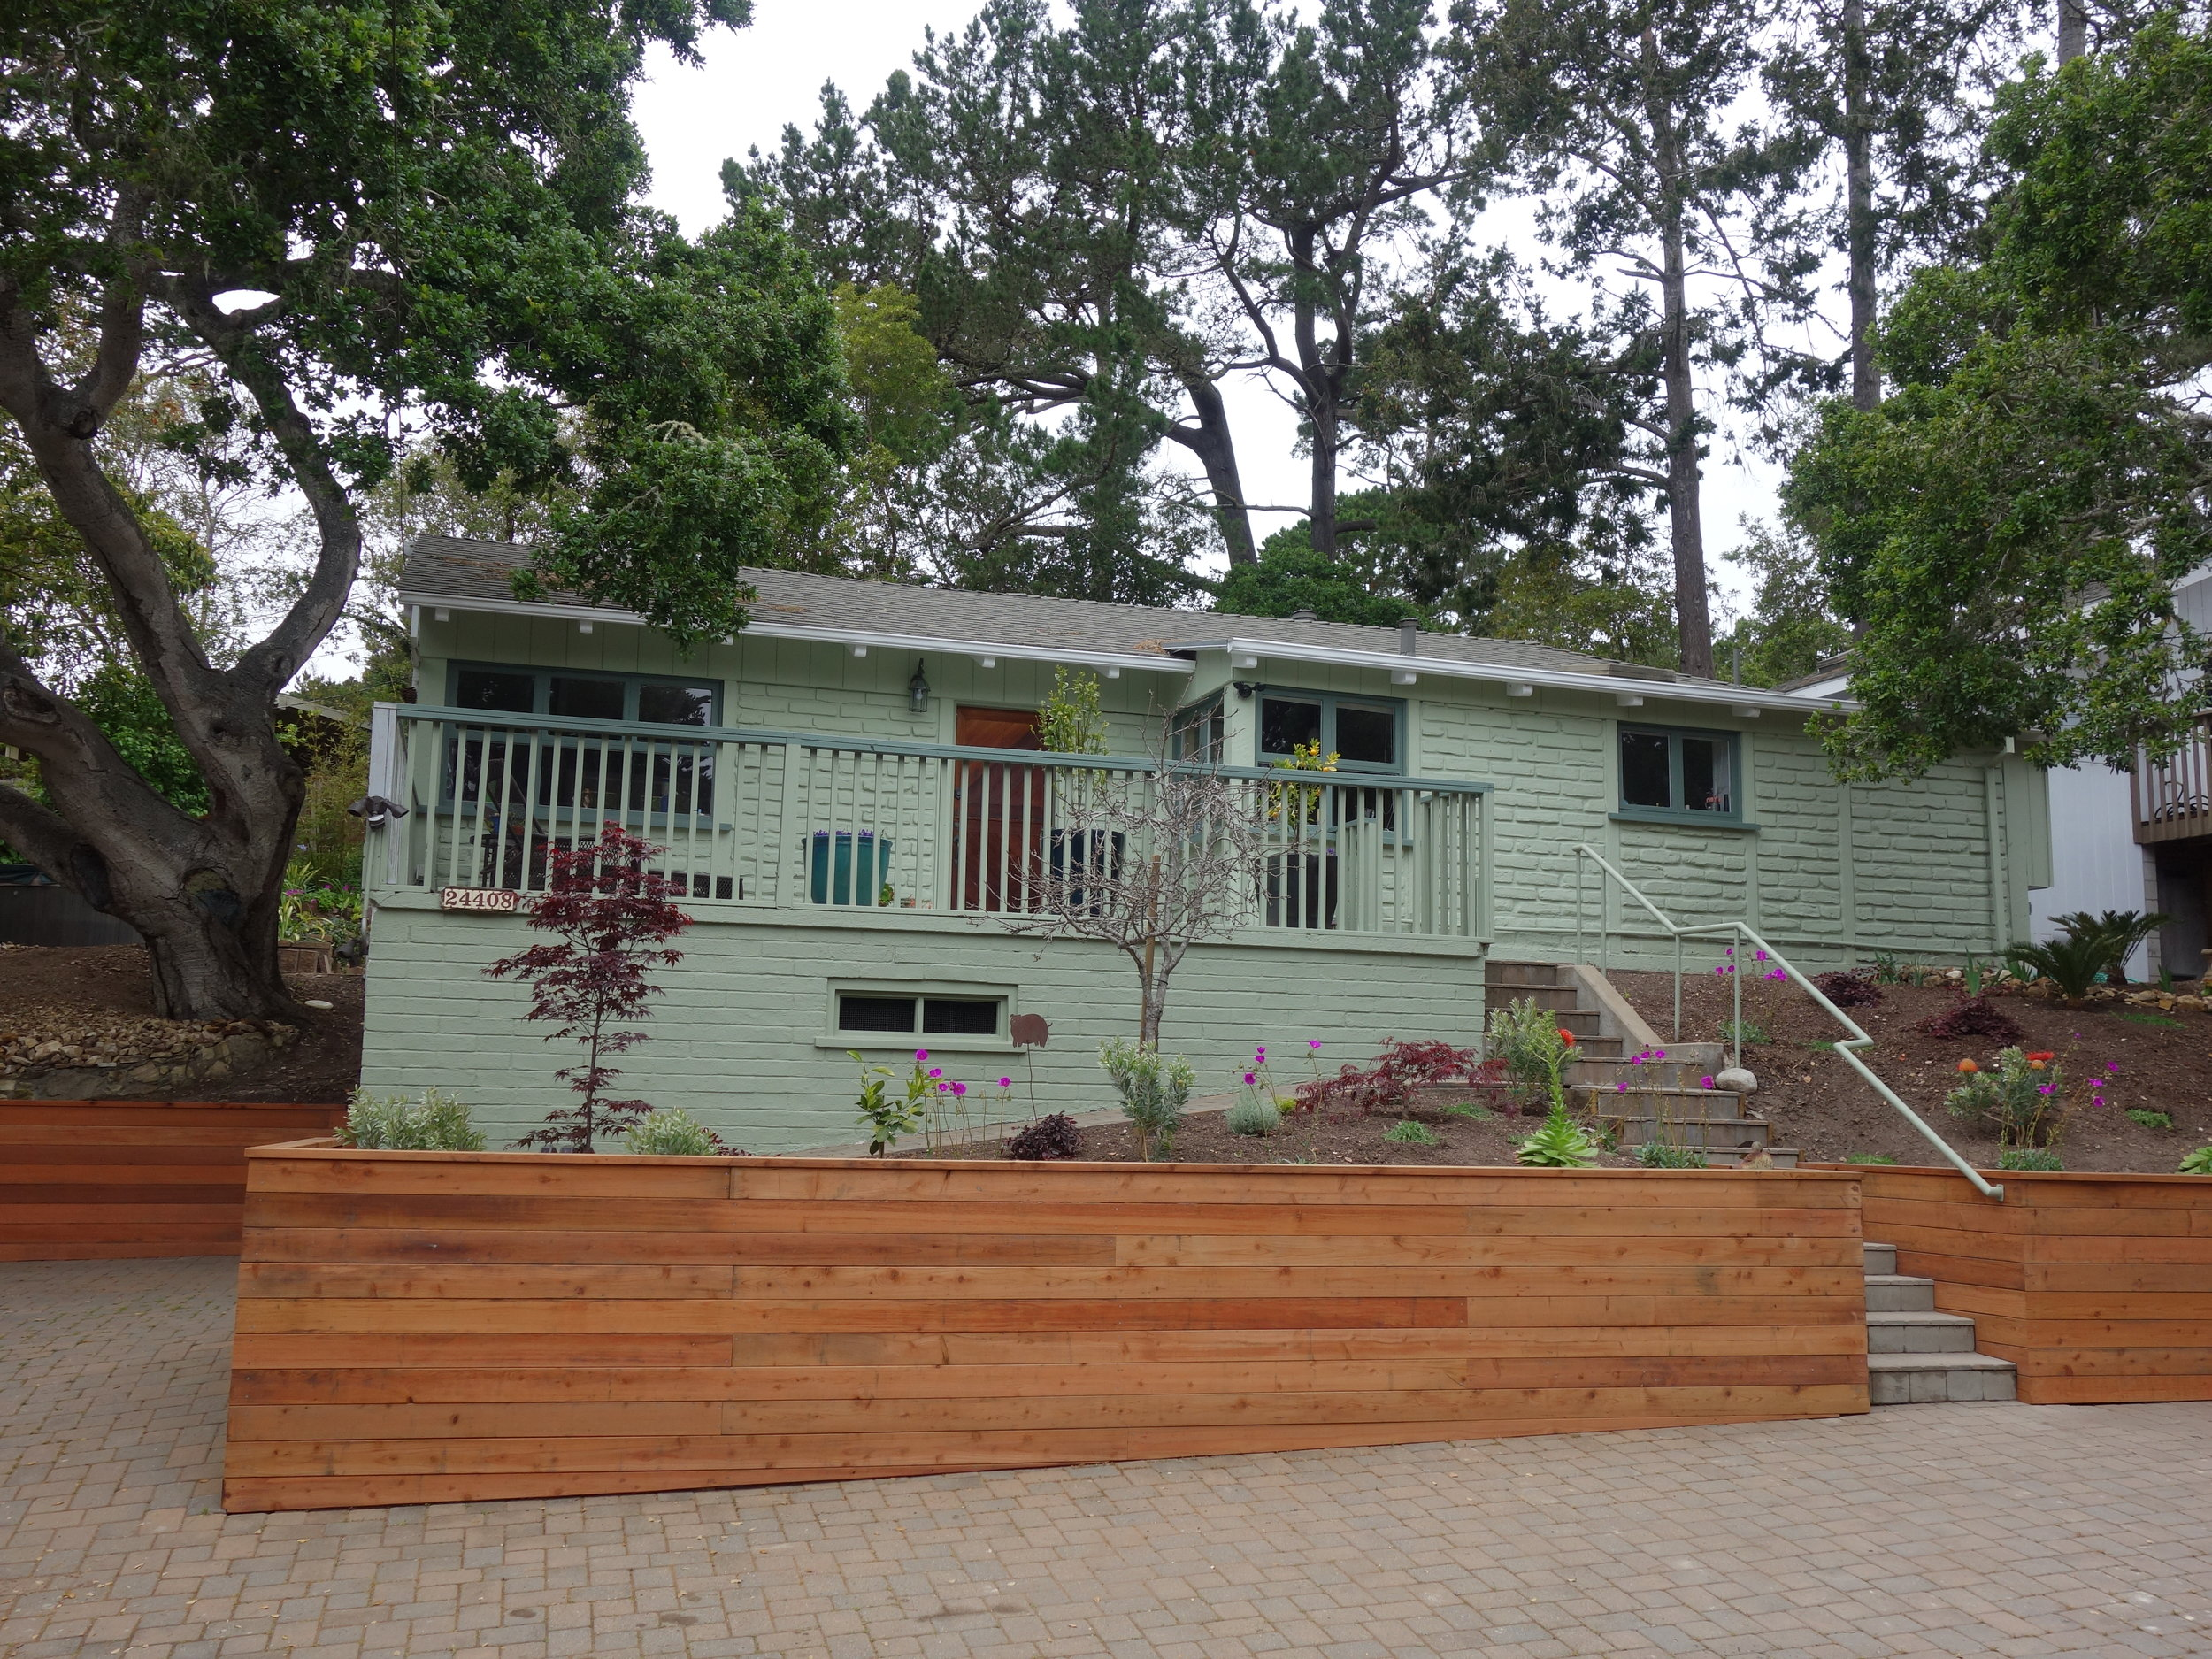 24408 San Mateo Ave. - Carmel Woods3 bed / 2.5 bath  |  1,850 sq.ft on 8,900 sq.ft. lot